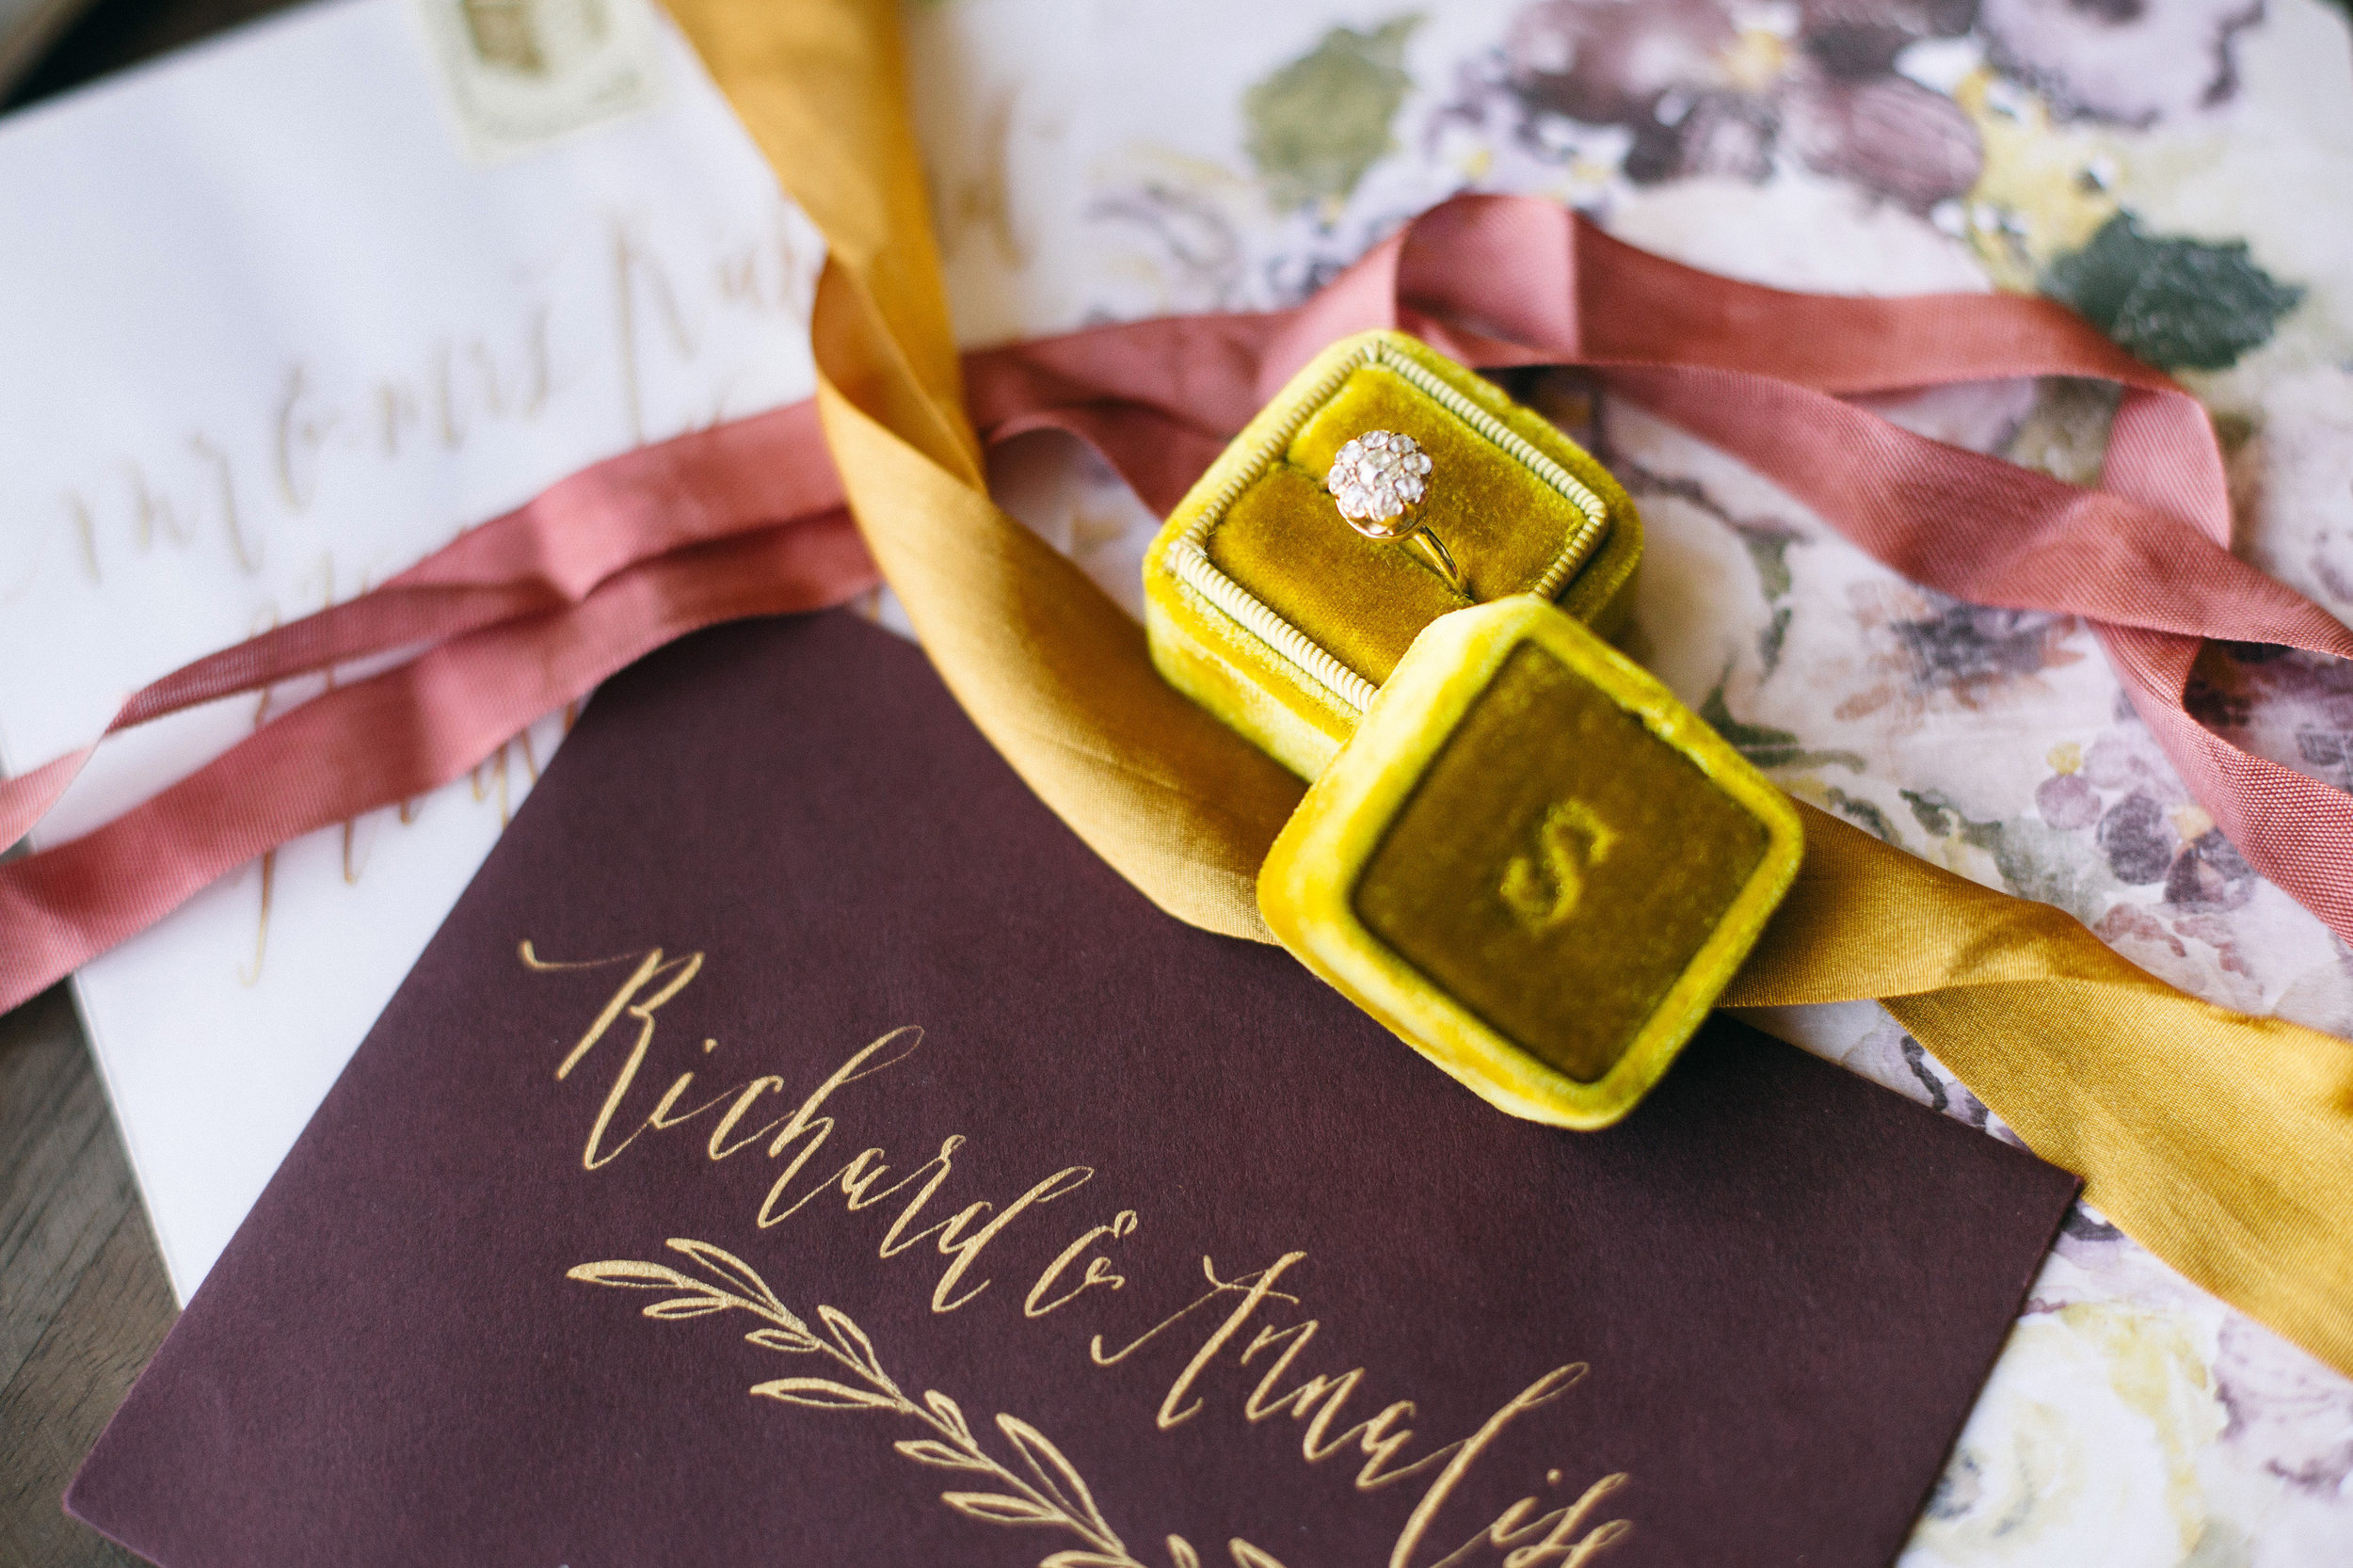 Wedding stationery by Annie Mertlich of Wildfield Paper Co. & photo by Shannon Elizabeth Photography